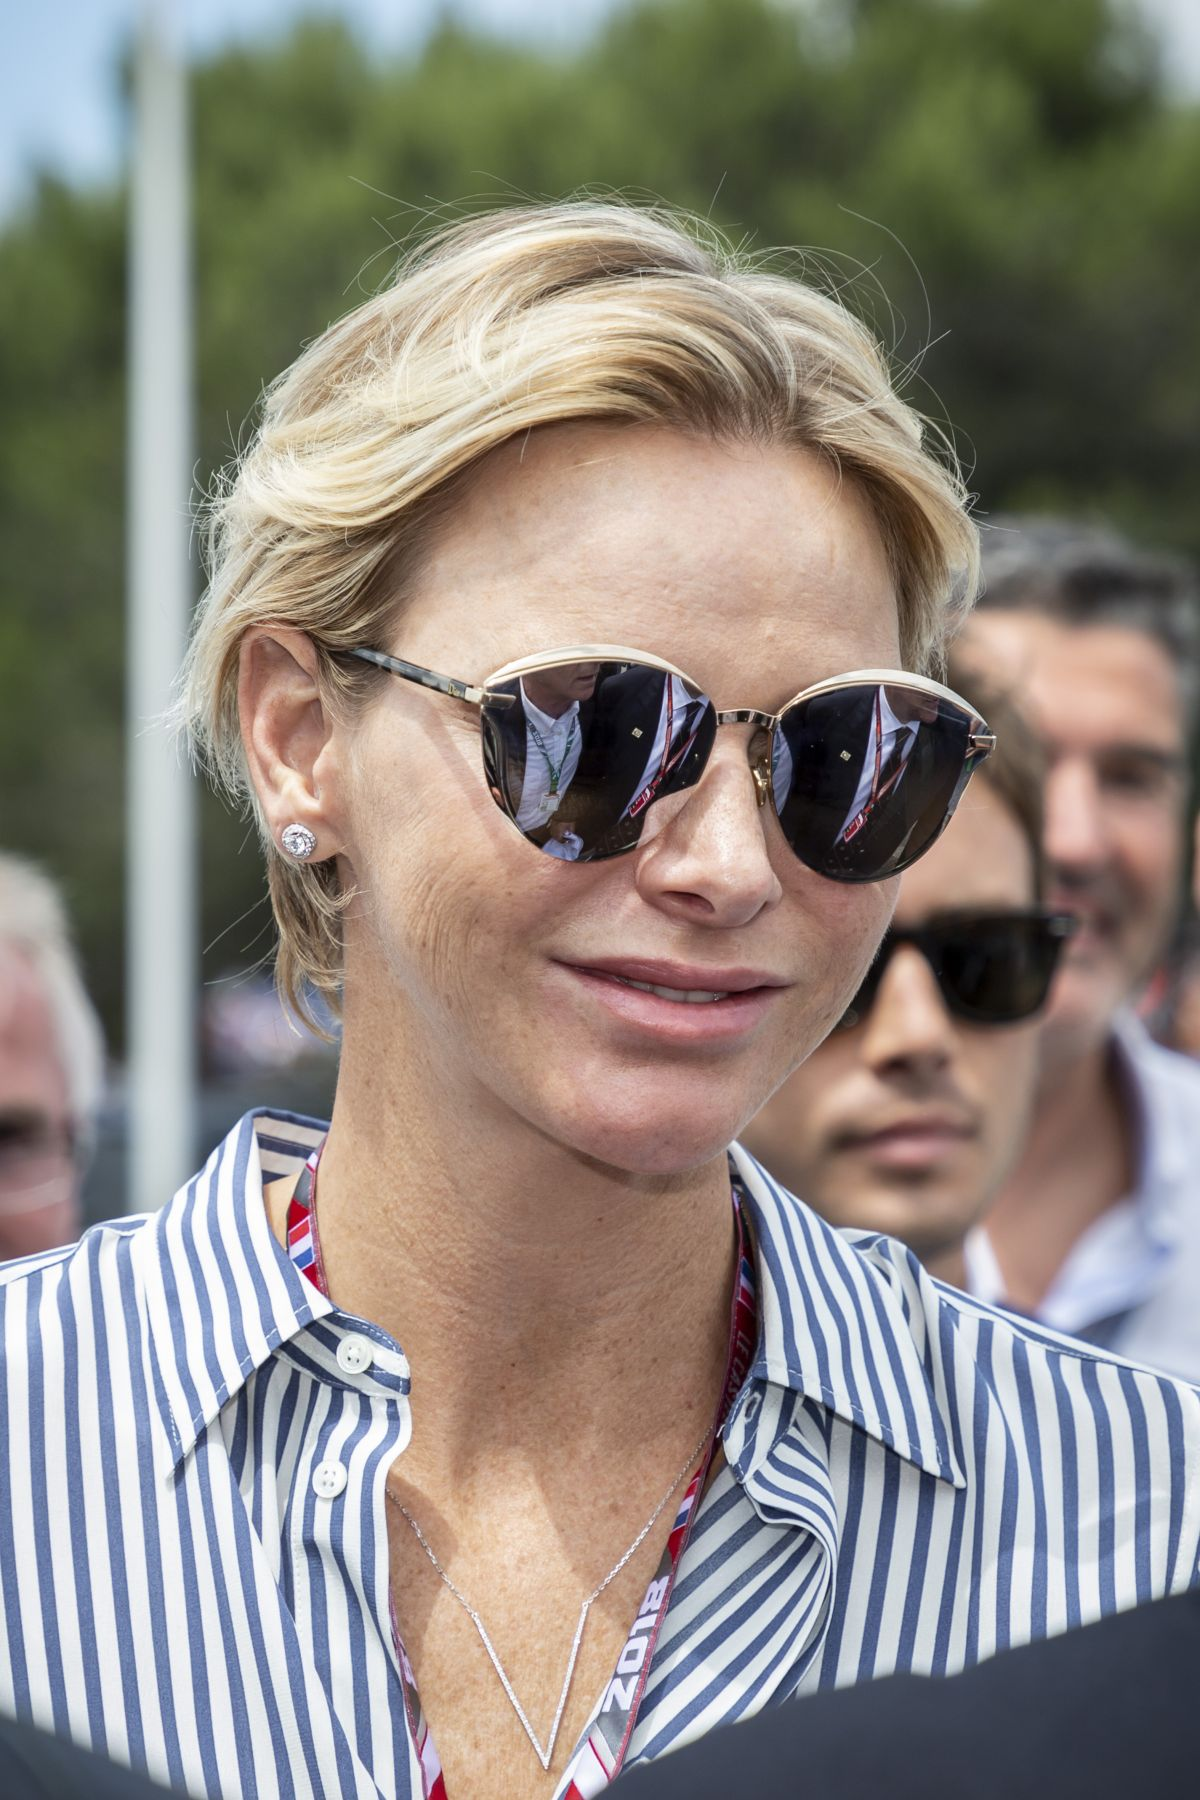 charlene princess of monaco at the 2018 f1 france grand prix in le castellet monaco celebzz. Black Bedroom Furniture Sets. Home Design Ideas